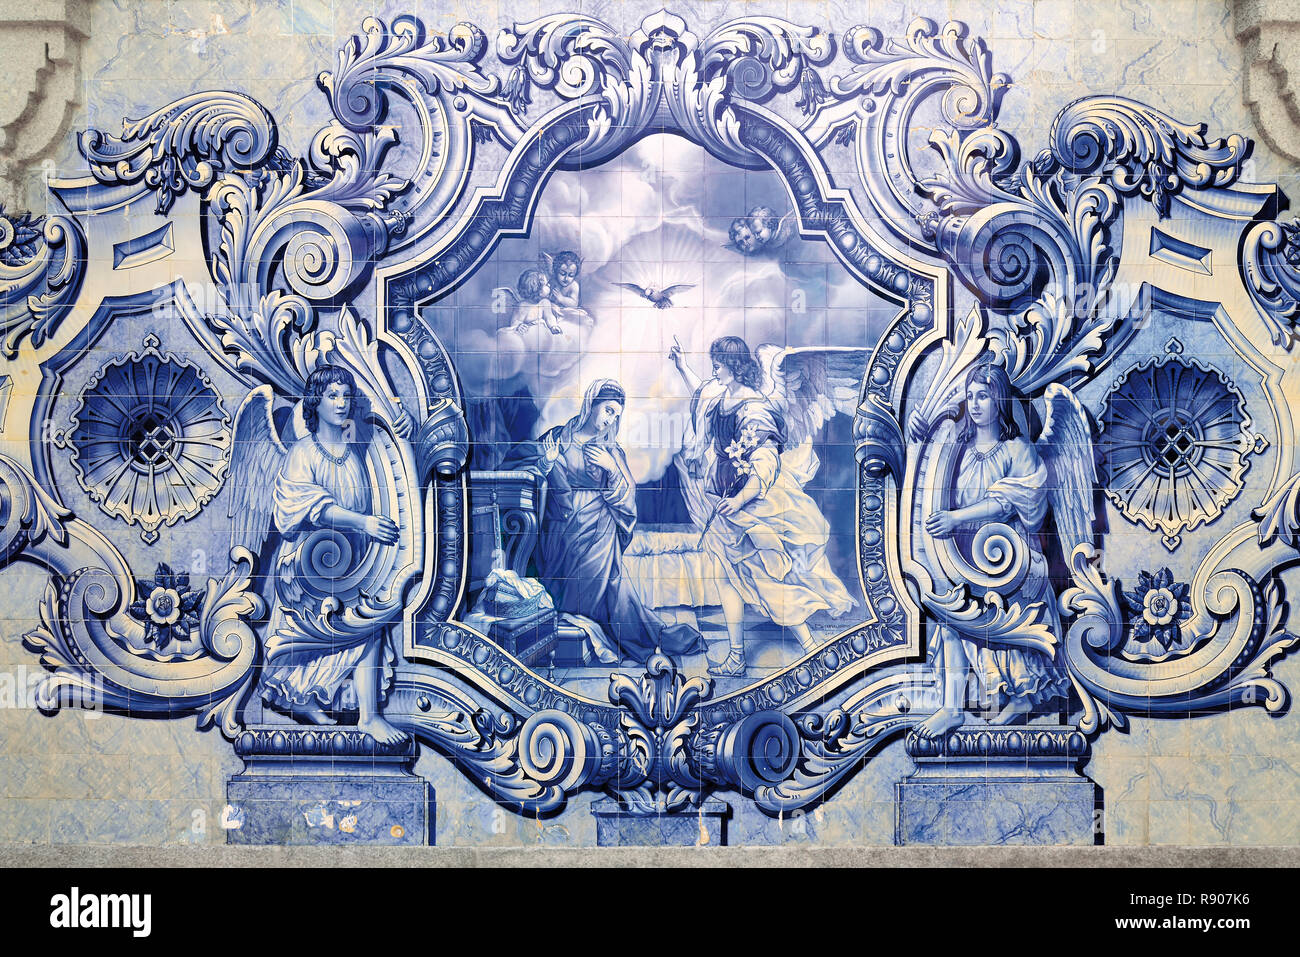 Blue and white historic tile painting with religious motive - Stock Image